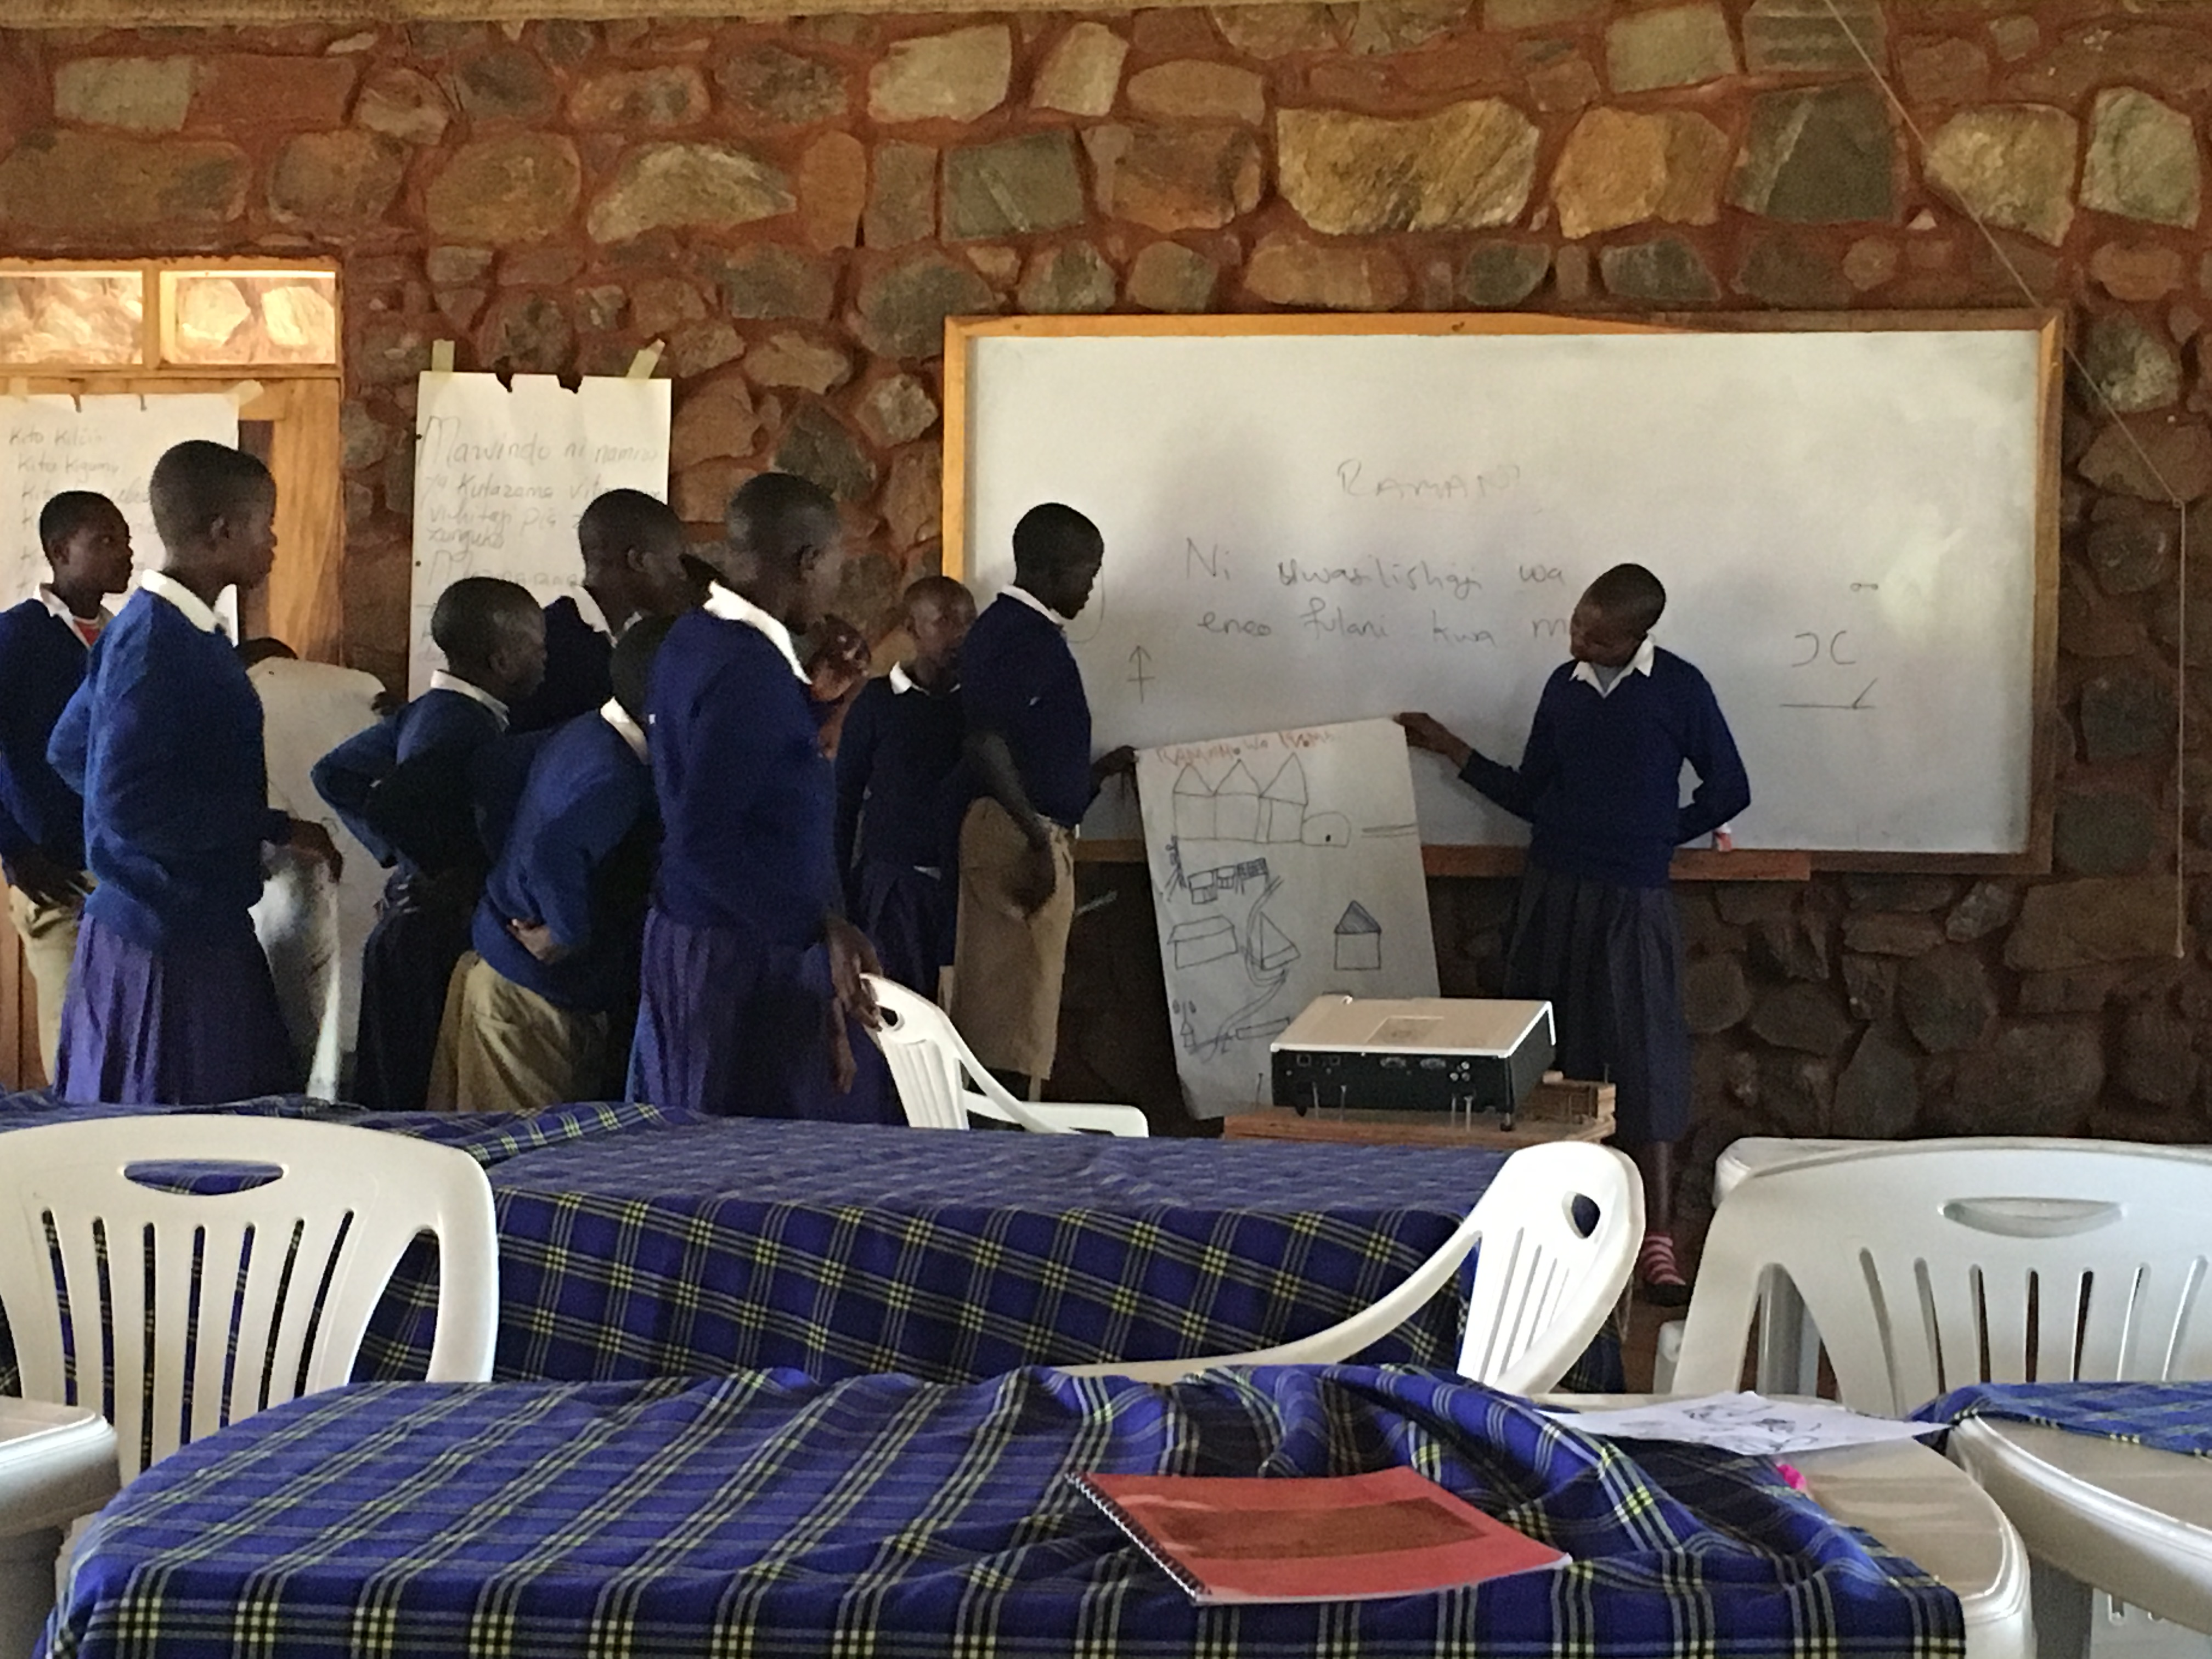 When I first arrived at Noloholo the students were learning to make maps of the villages in order to think spatially and about natural resources in the landscape